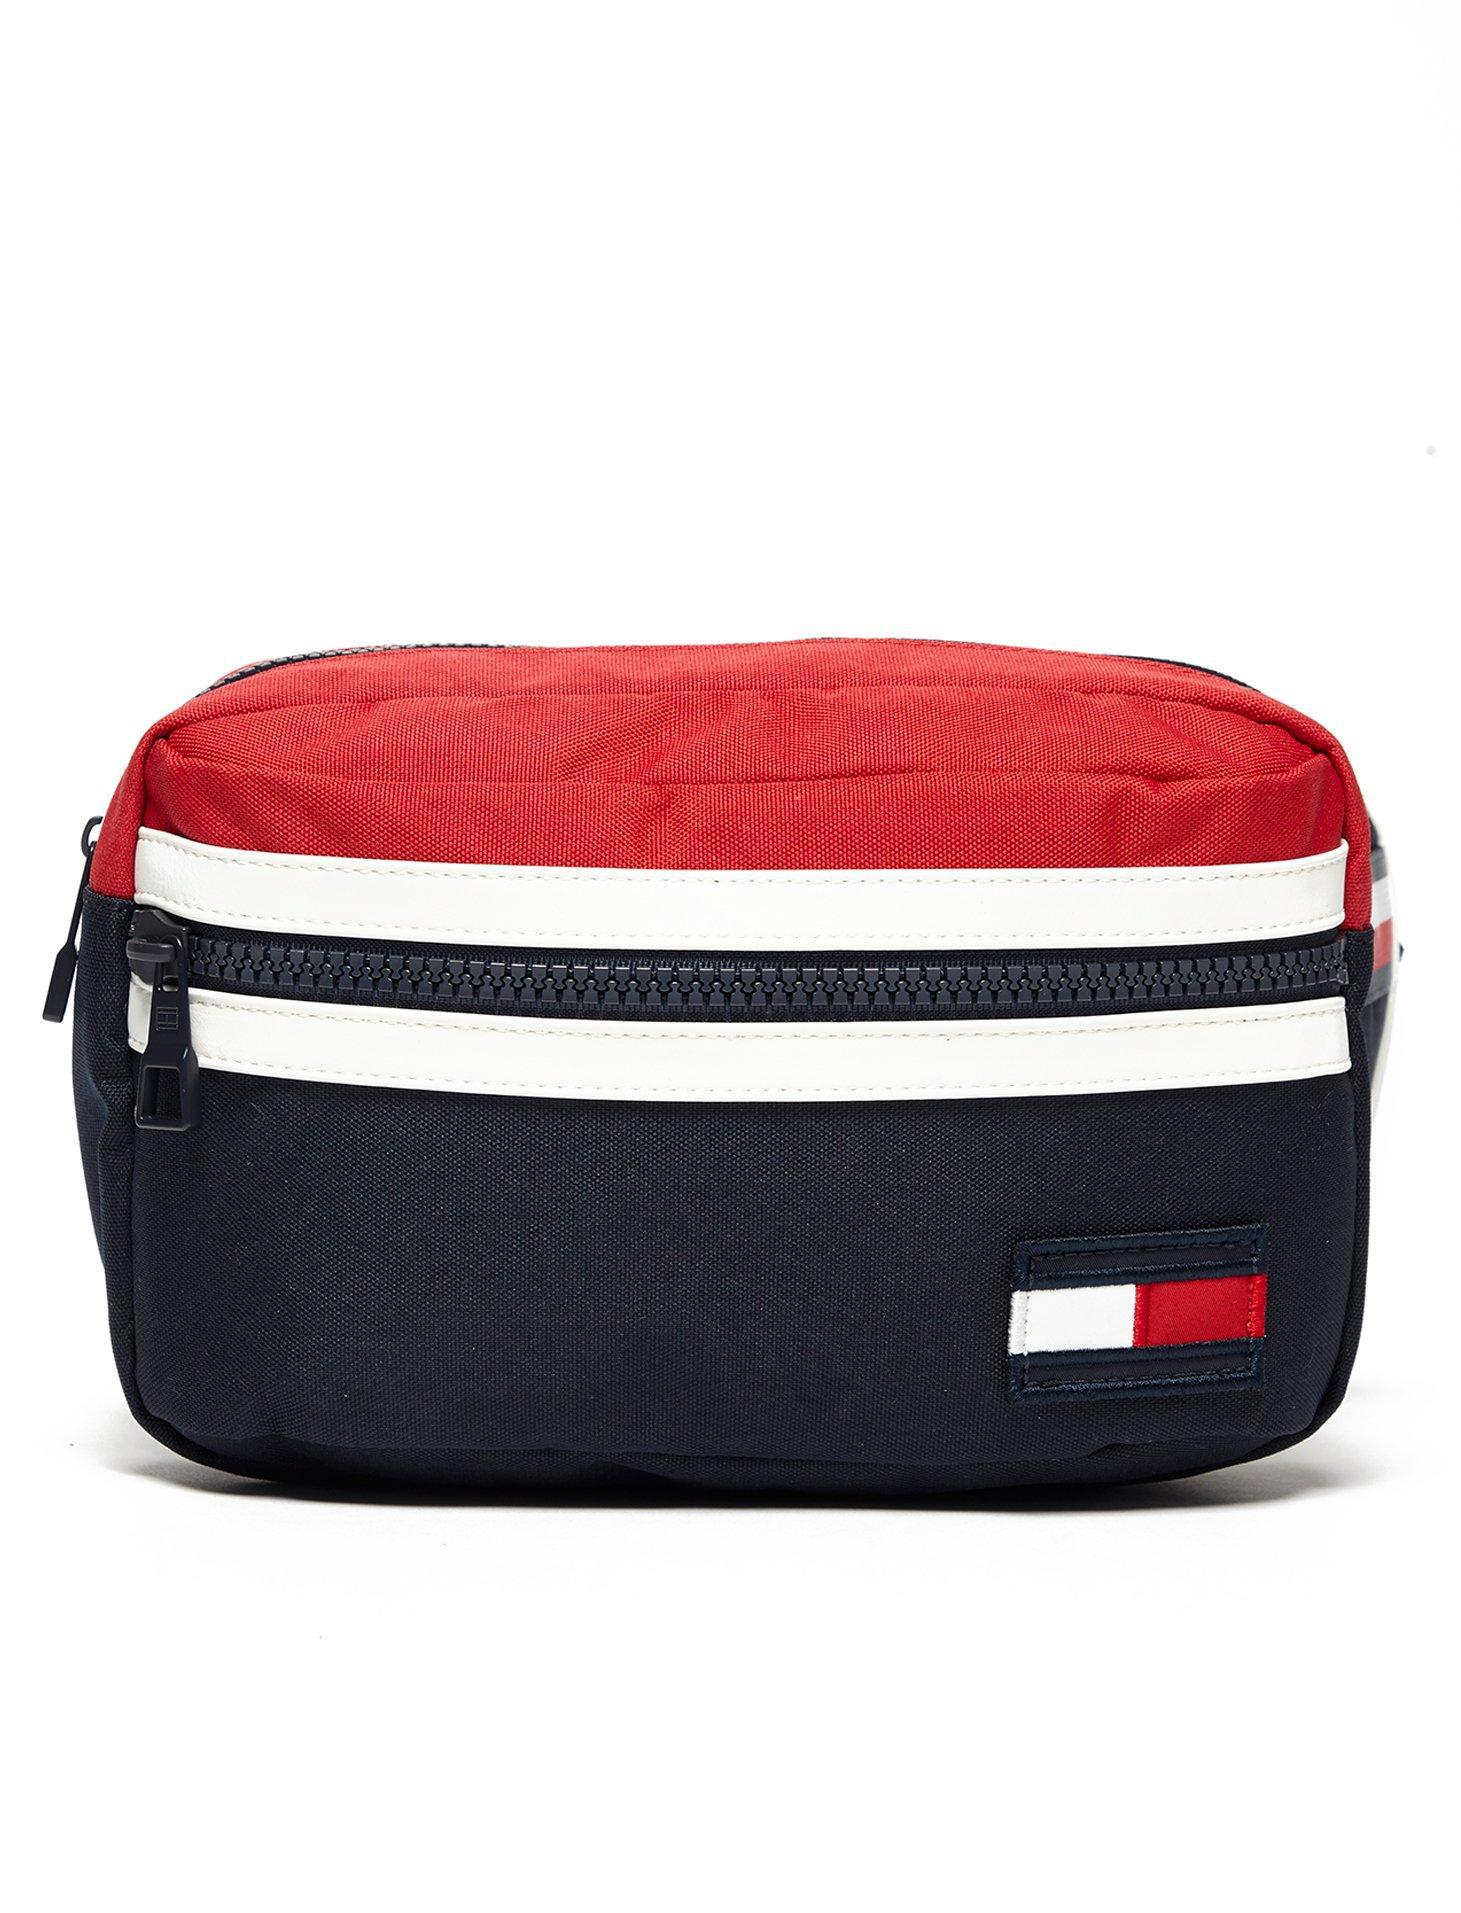 0fadf7cd0c Tommy Hilfiger Navy And Red Laptop Backpack- Fenix Toulouse Handball